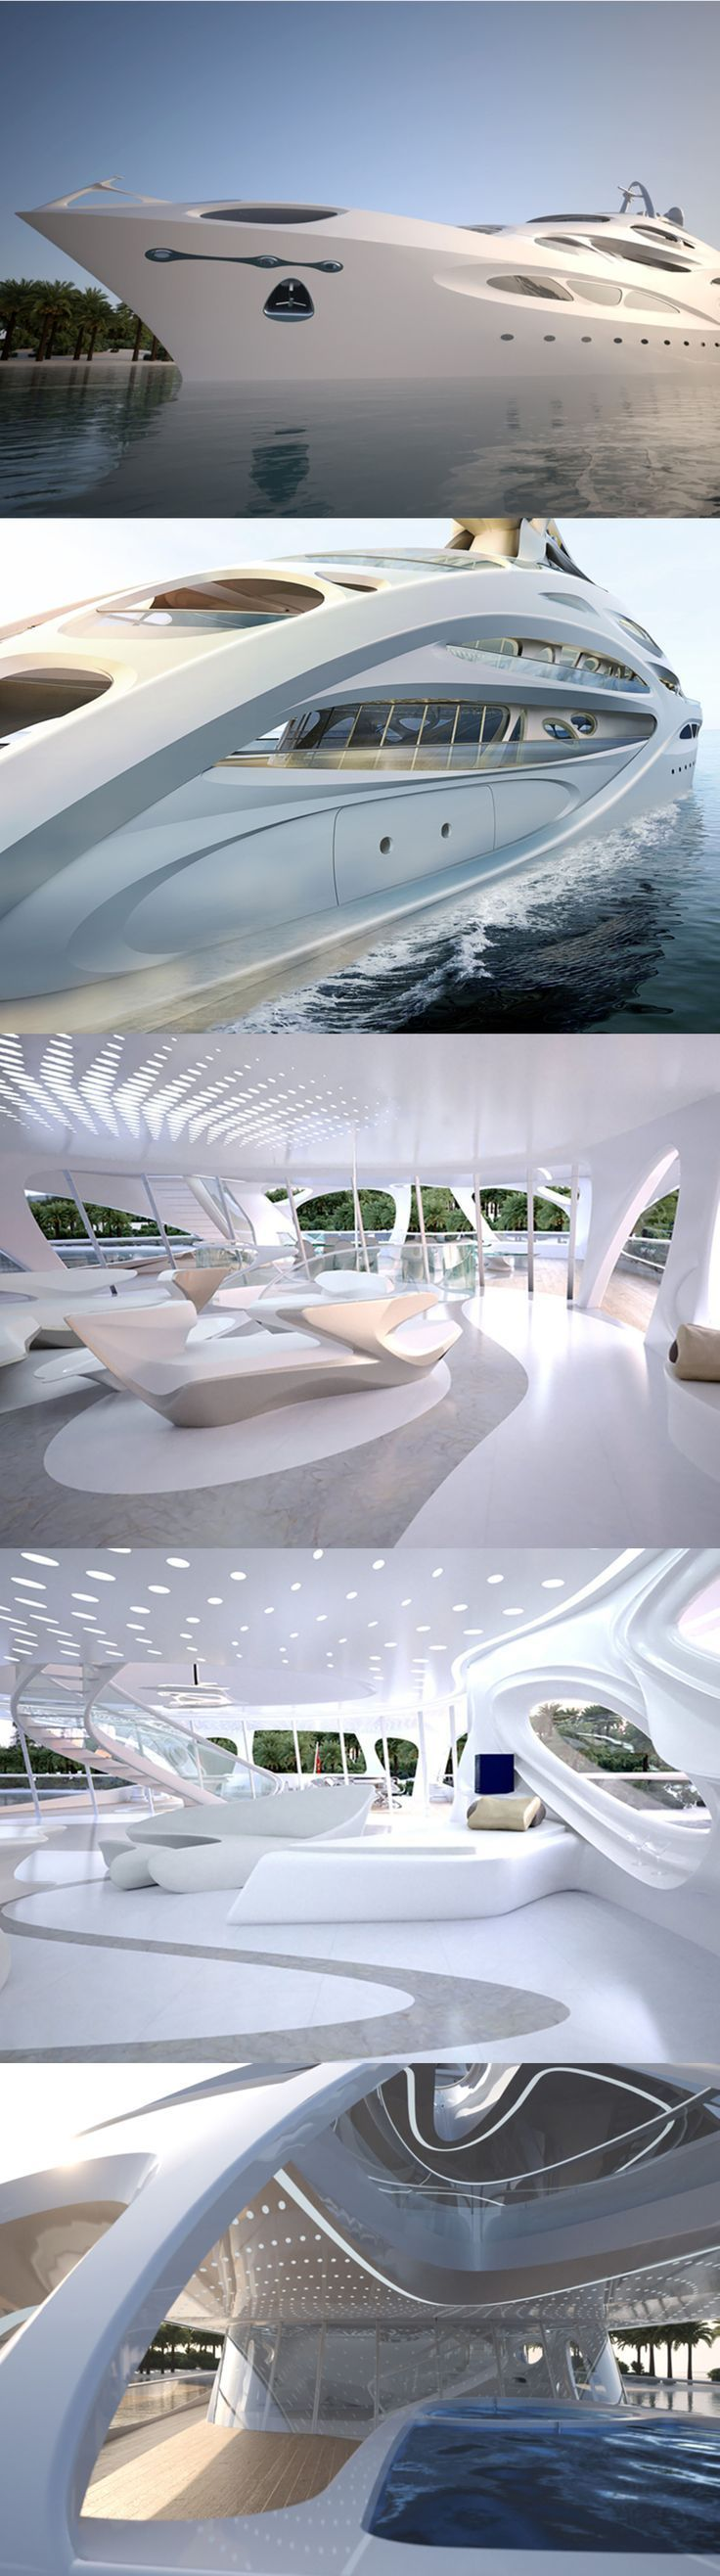 Zaha Hadid's Super Yacht. Damn! - Explore the World with Travel Nerd Nici, one Country at a Time. travelnerdnici.com